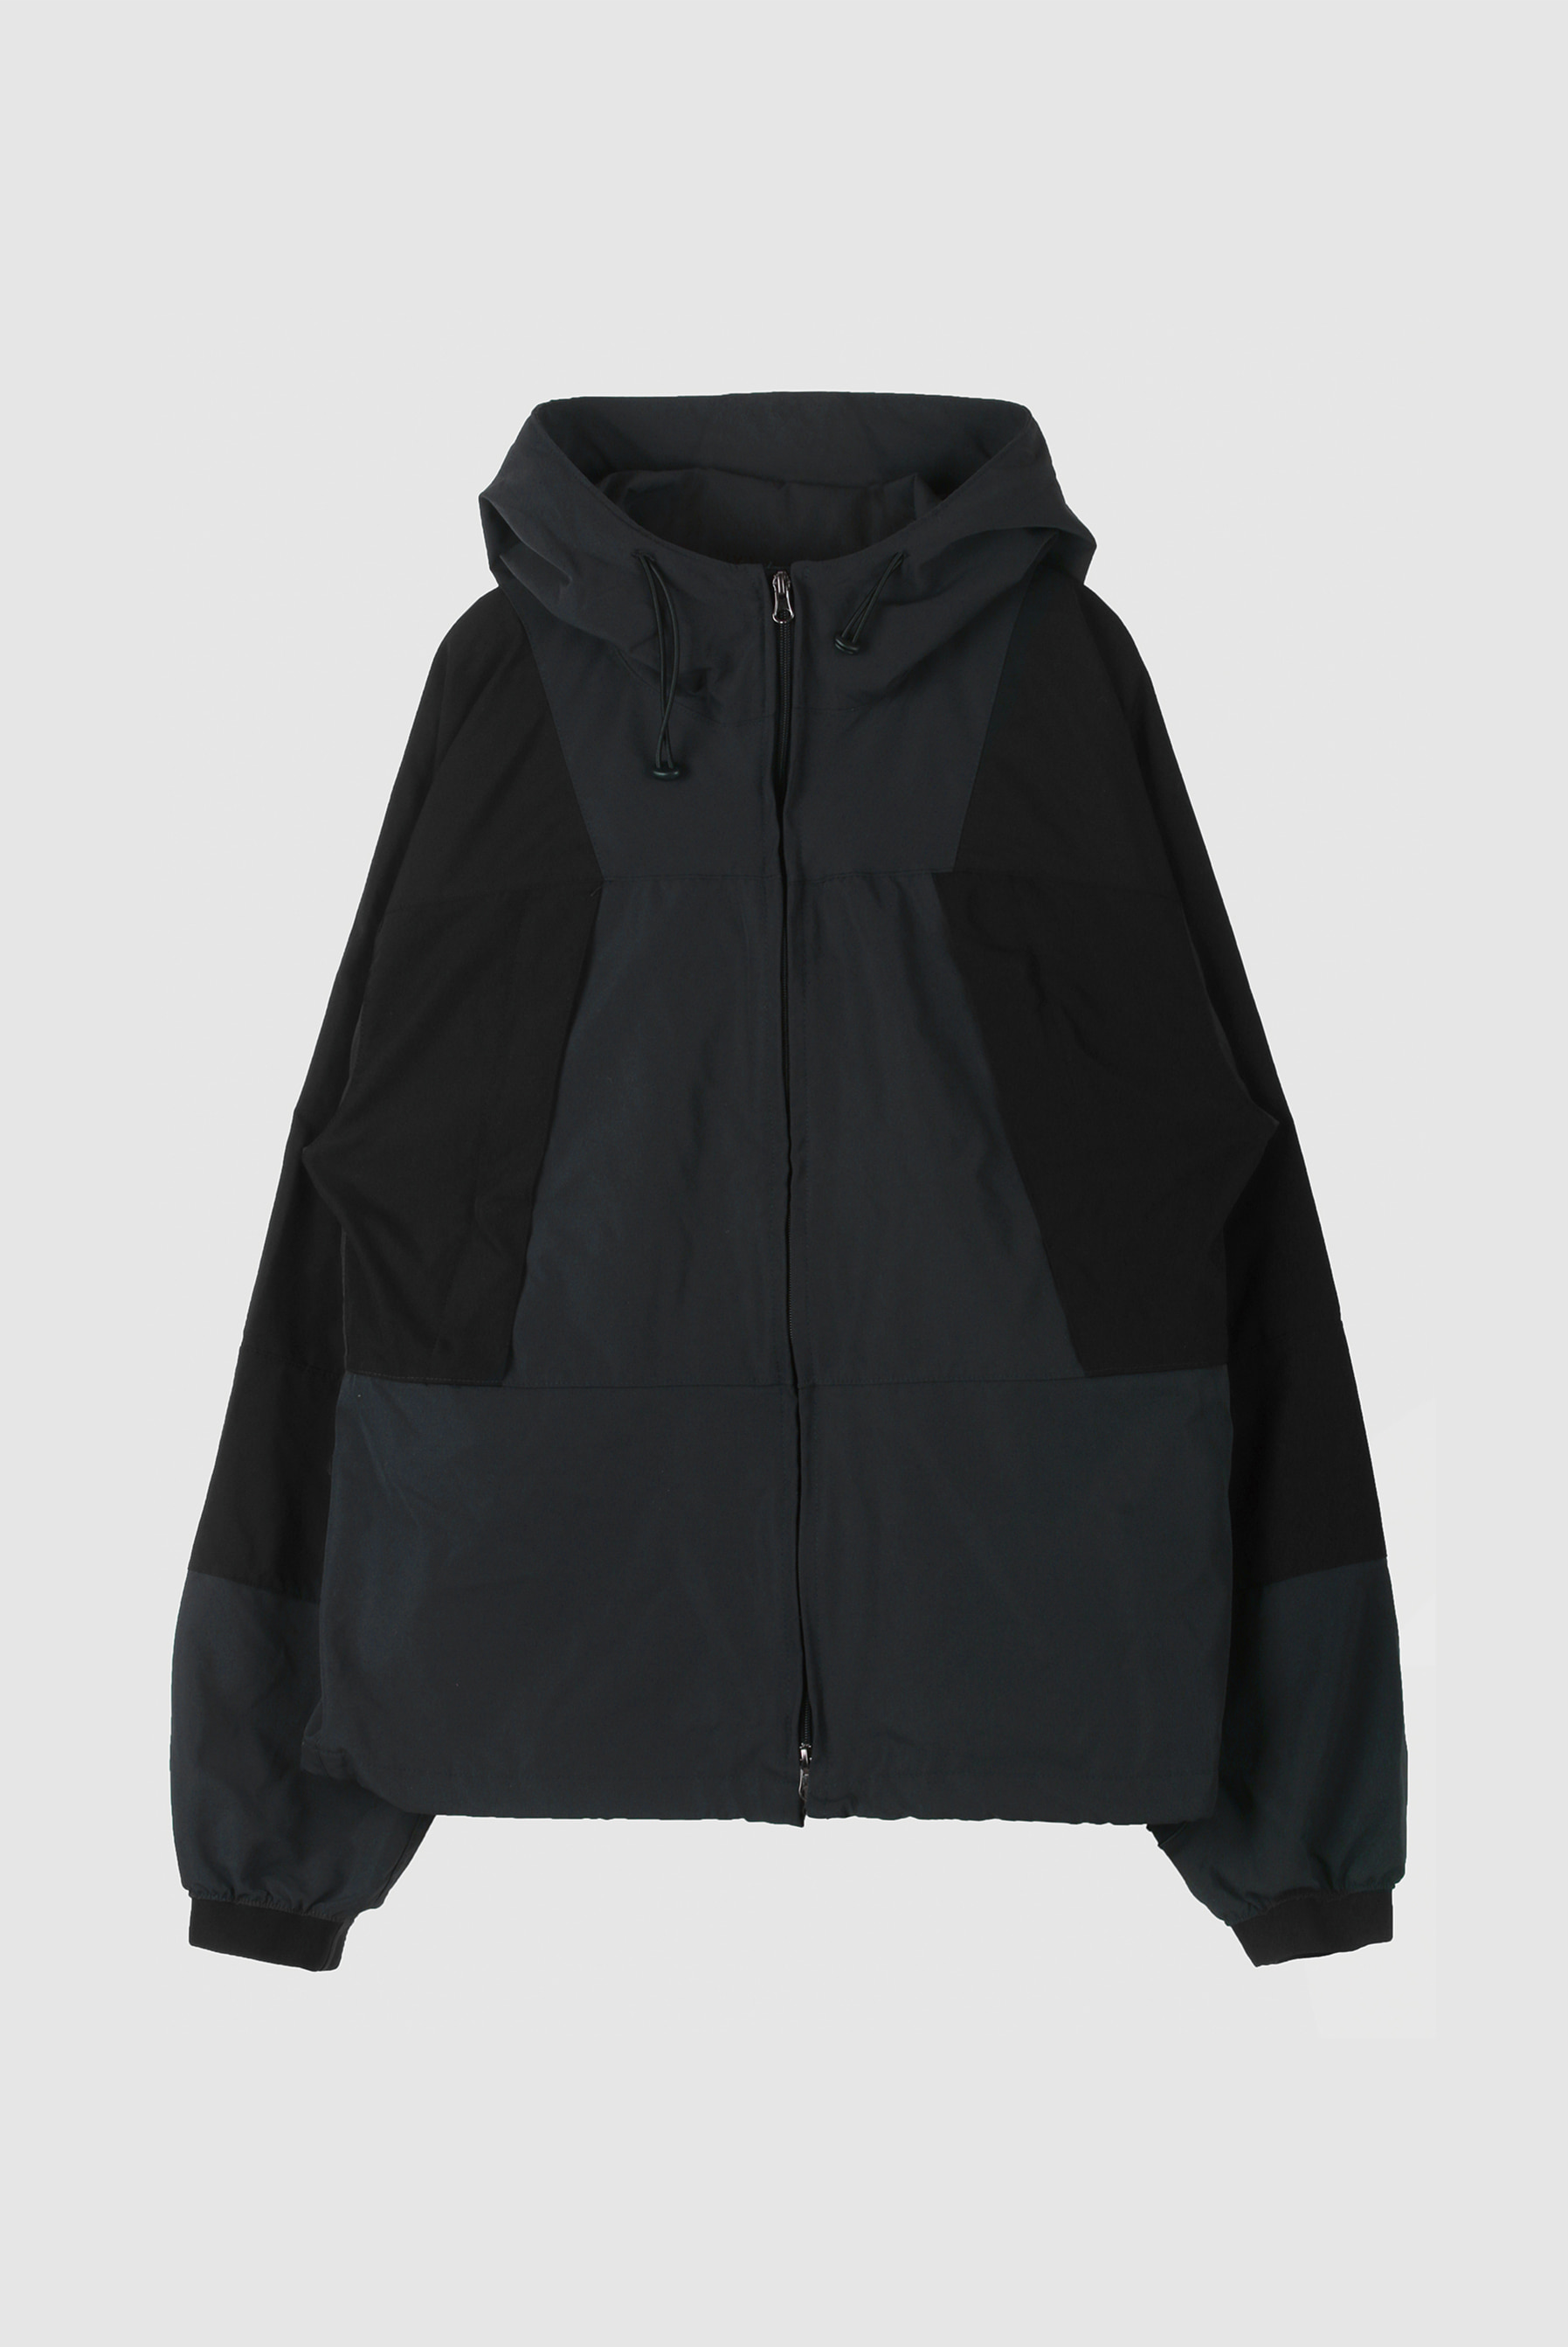 Two_Way Color Windbreaker